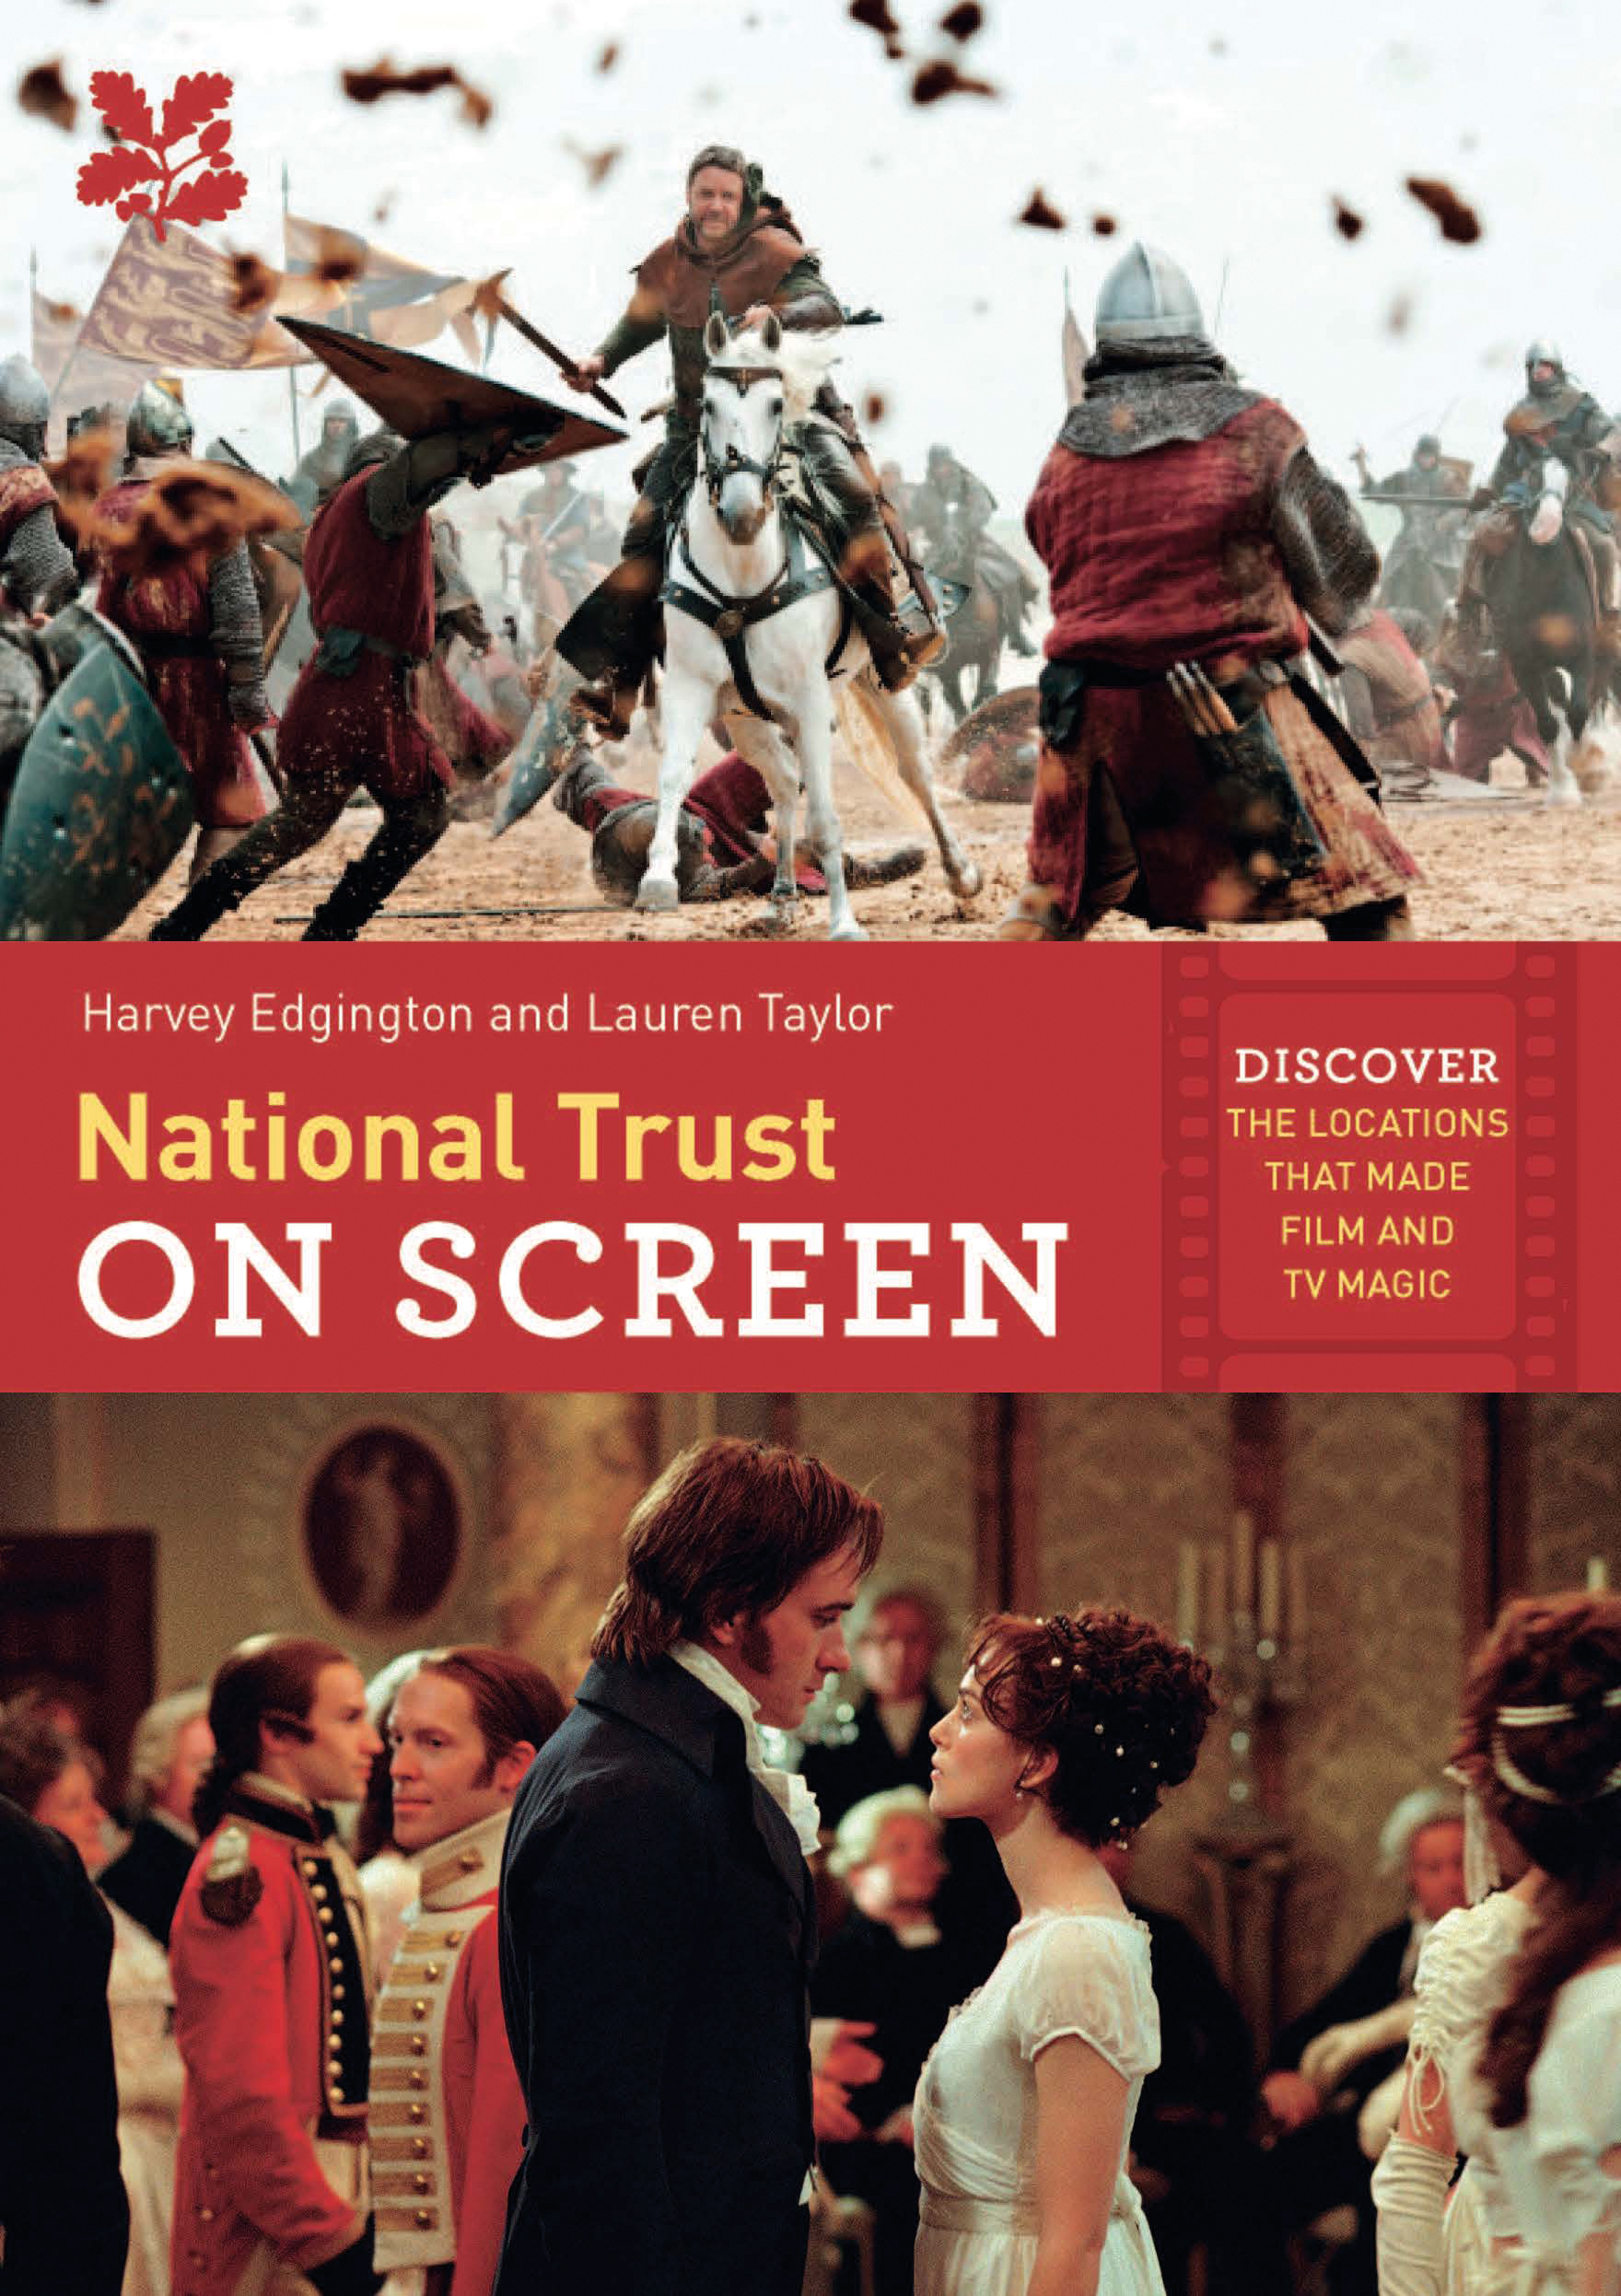 National Trust on Screen